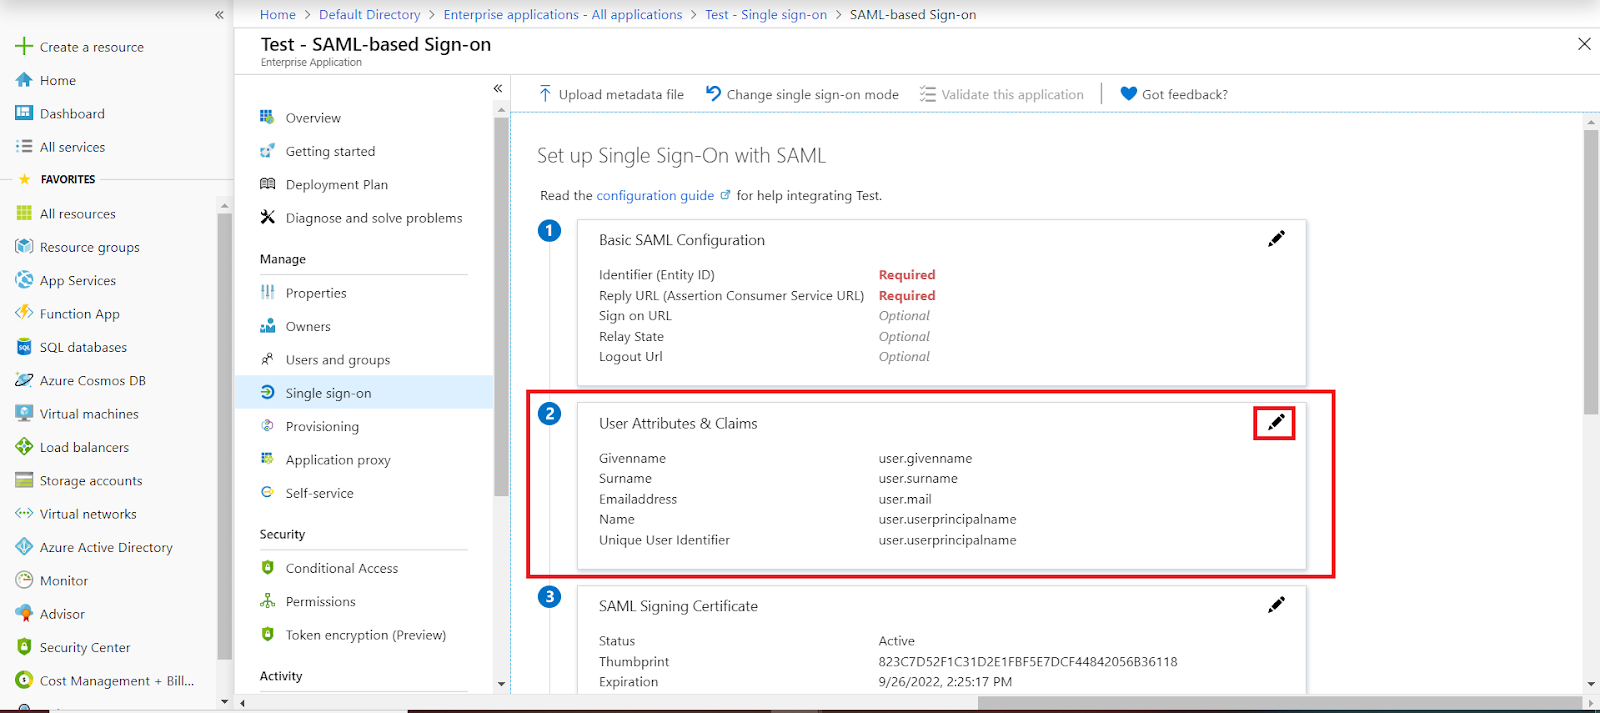 azure ad sso Attributes tab